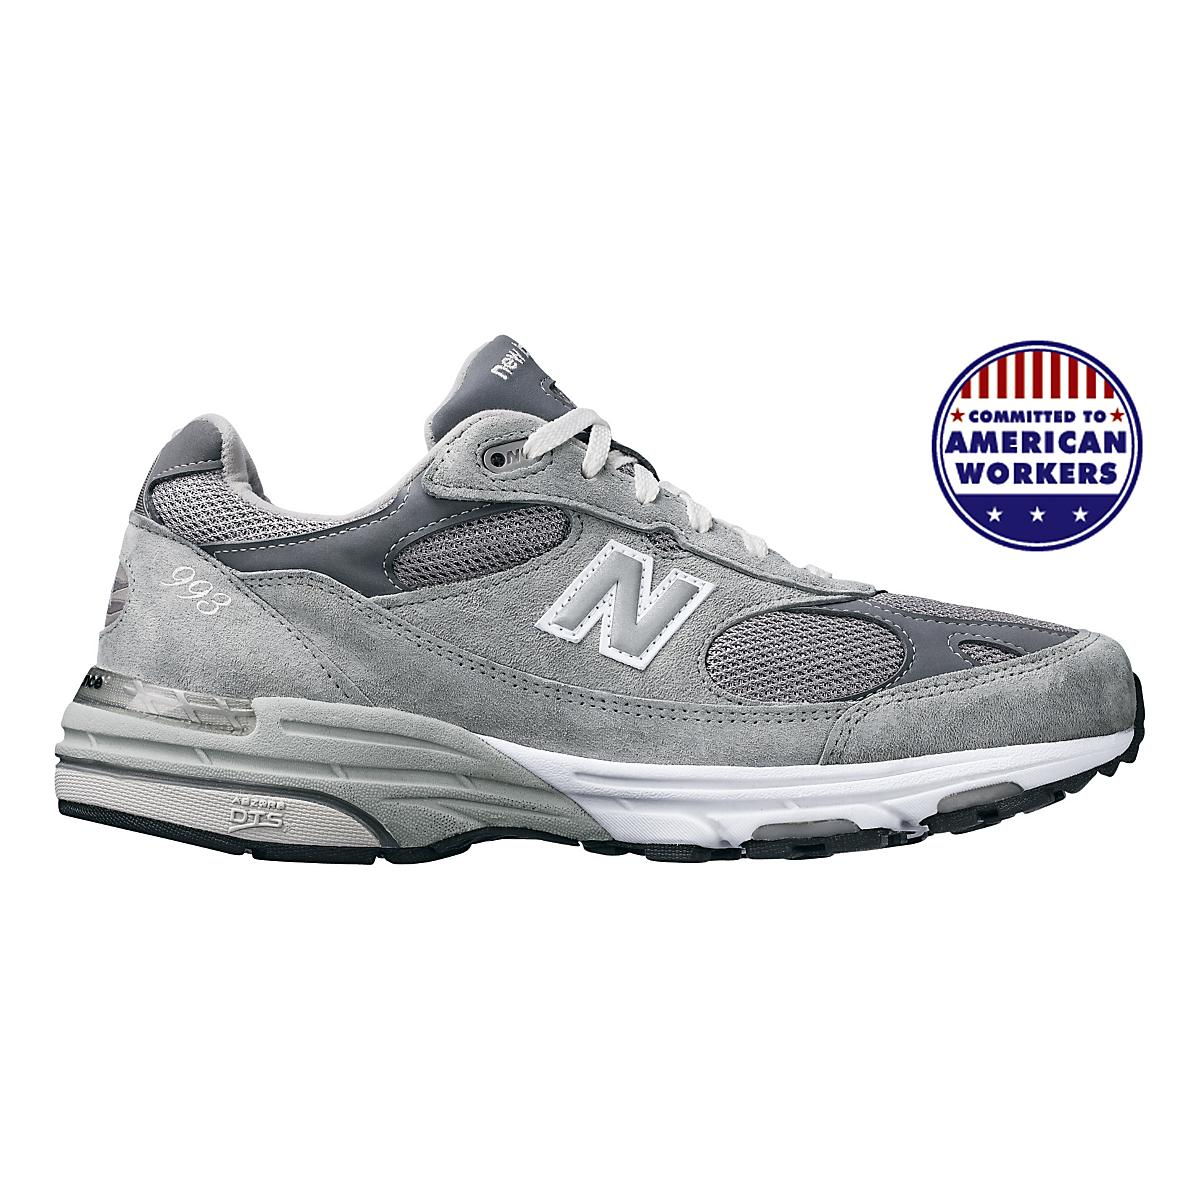 Finding Cheap New Balance 993 Running Shoes Online | New